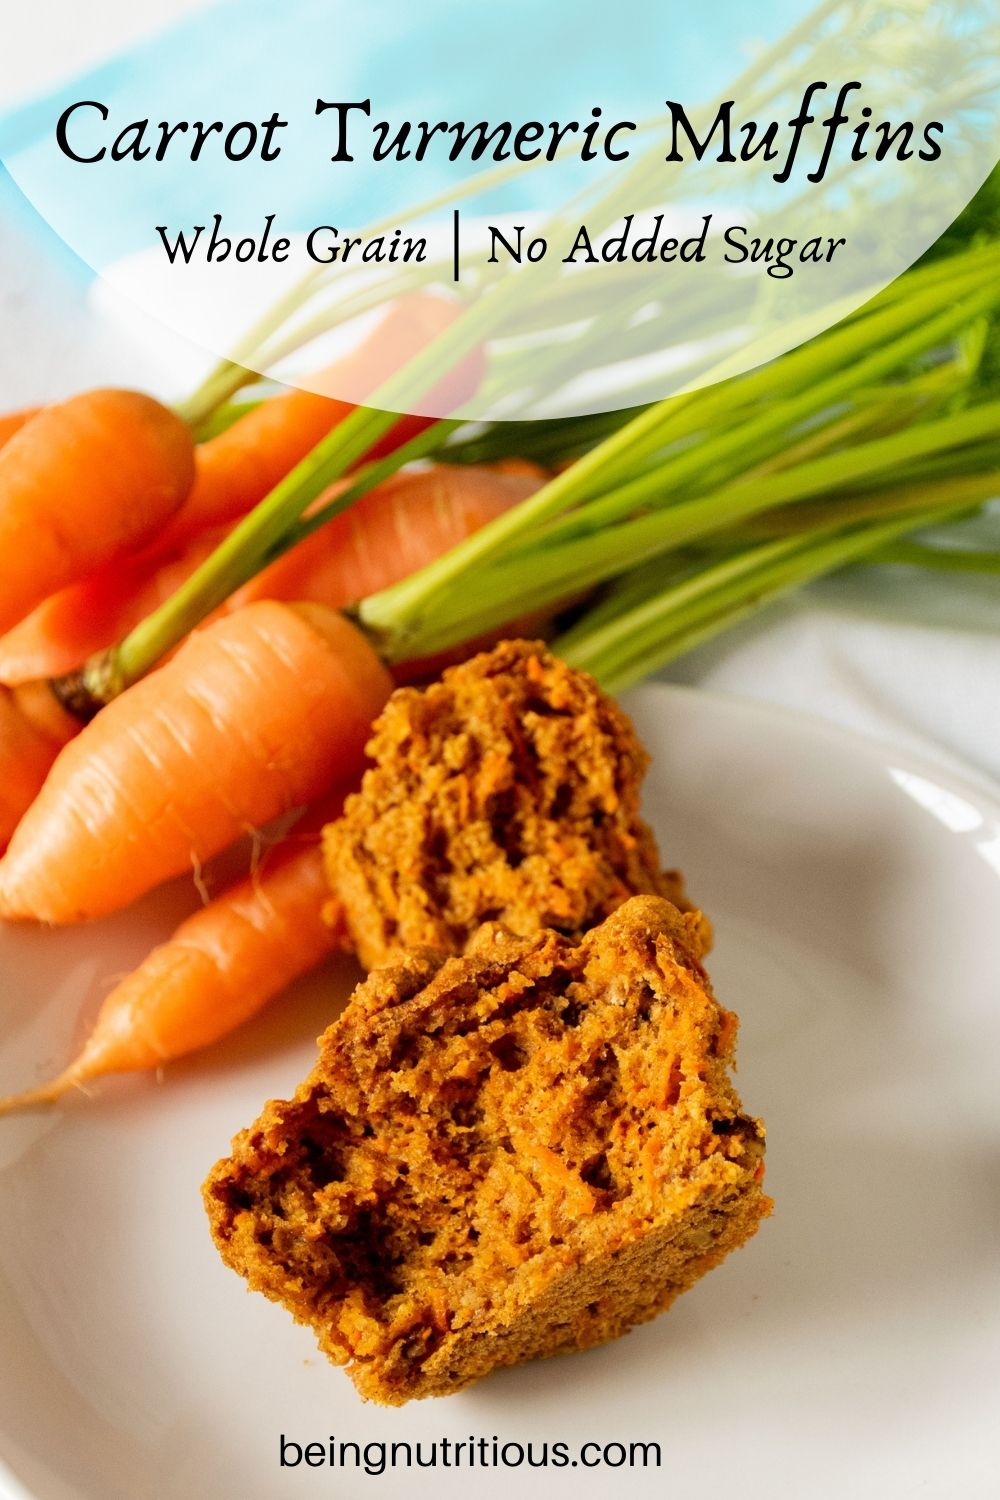 Muffin on a plate, cut in half, with fresh carrots in background. Text overlay: Whole grain, no added sugar.